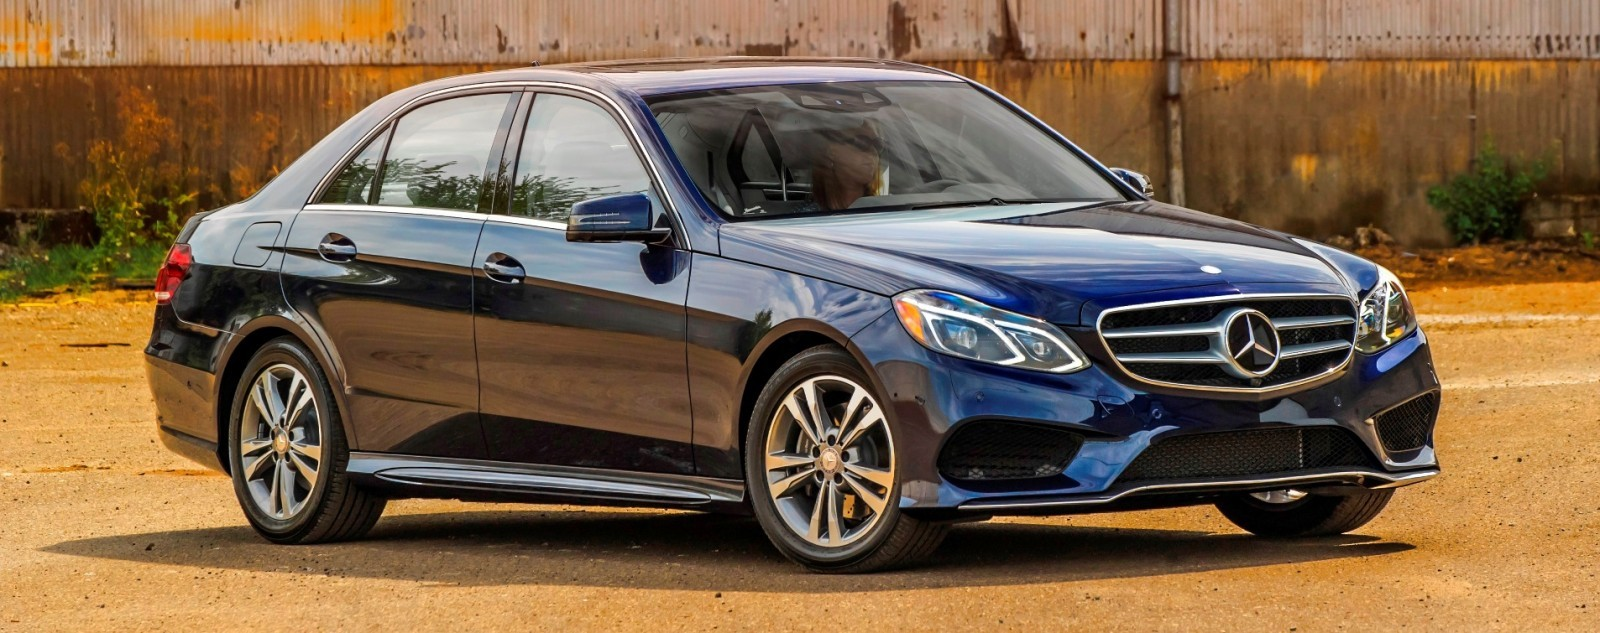 2014 mercedes benz e class style reset leaves bmw 528xi for How much is a 2014 mercedes benz